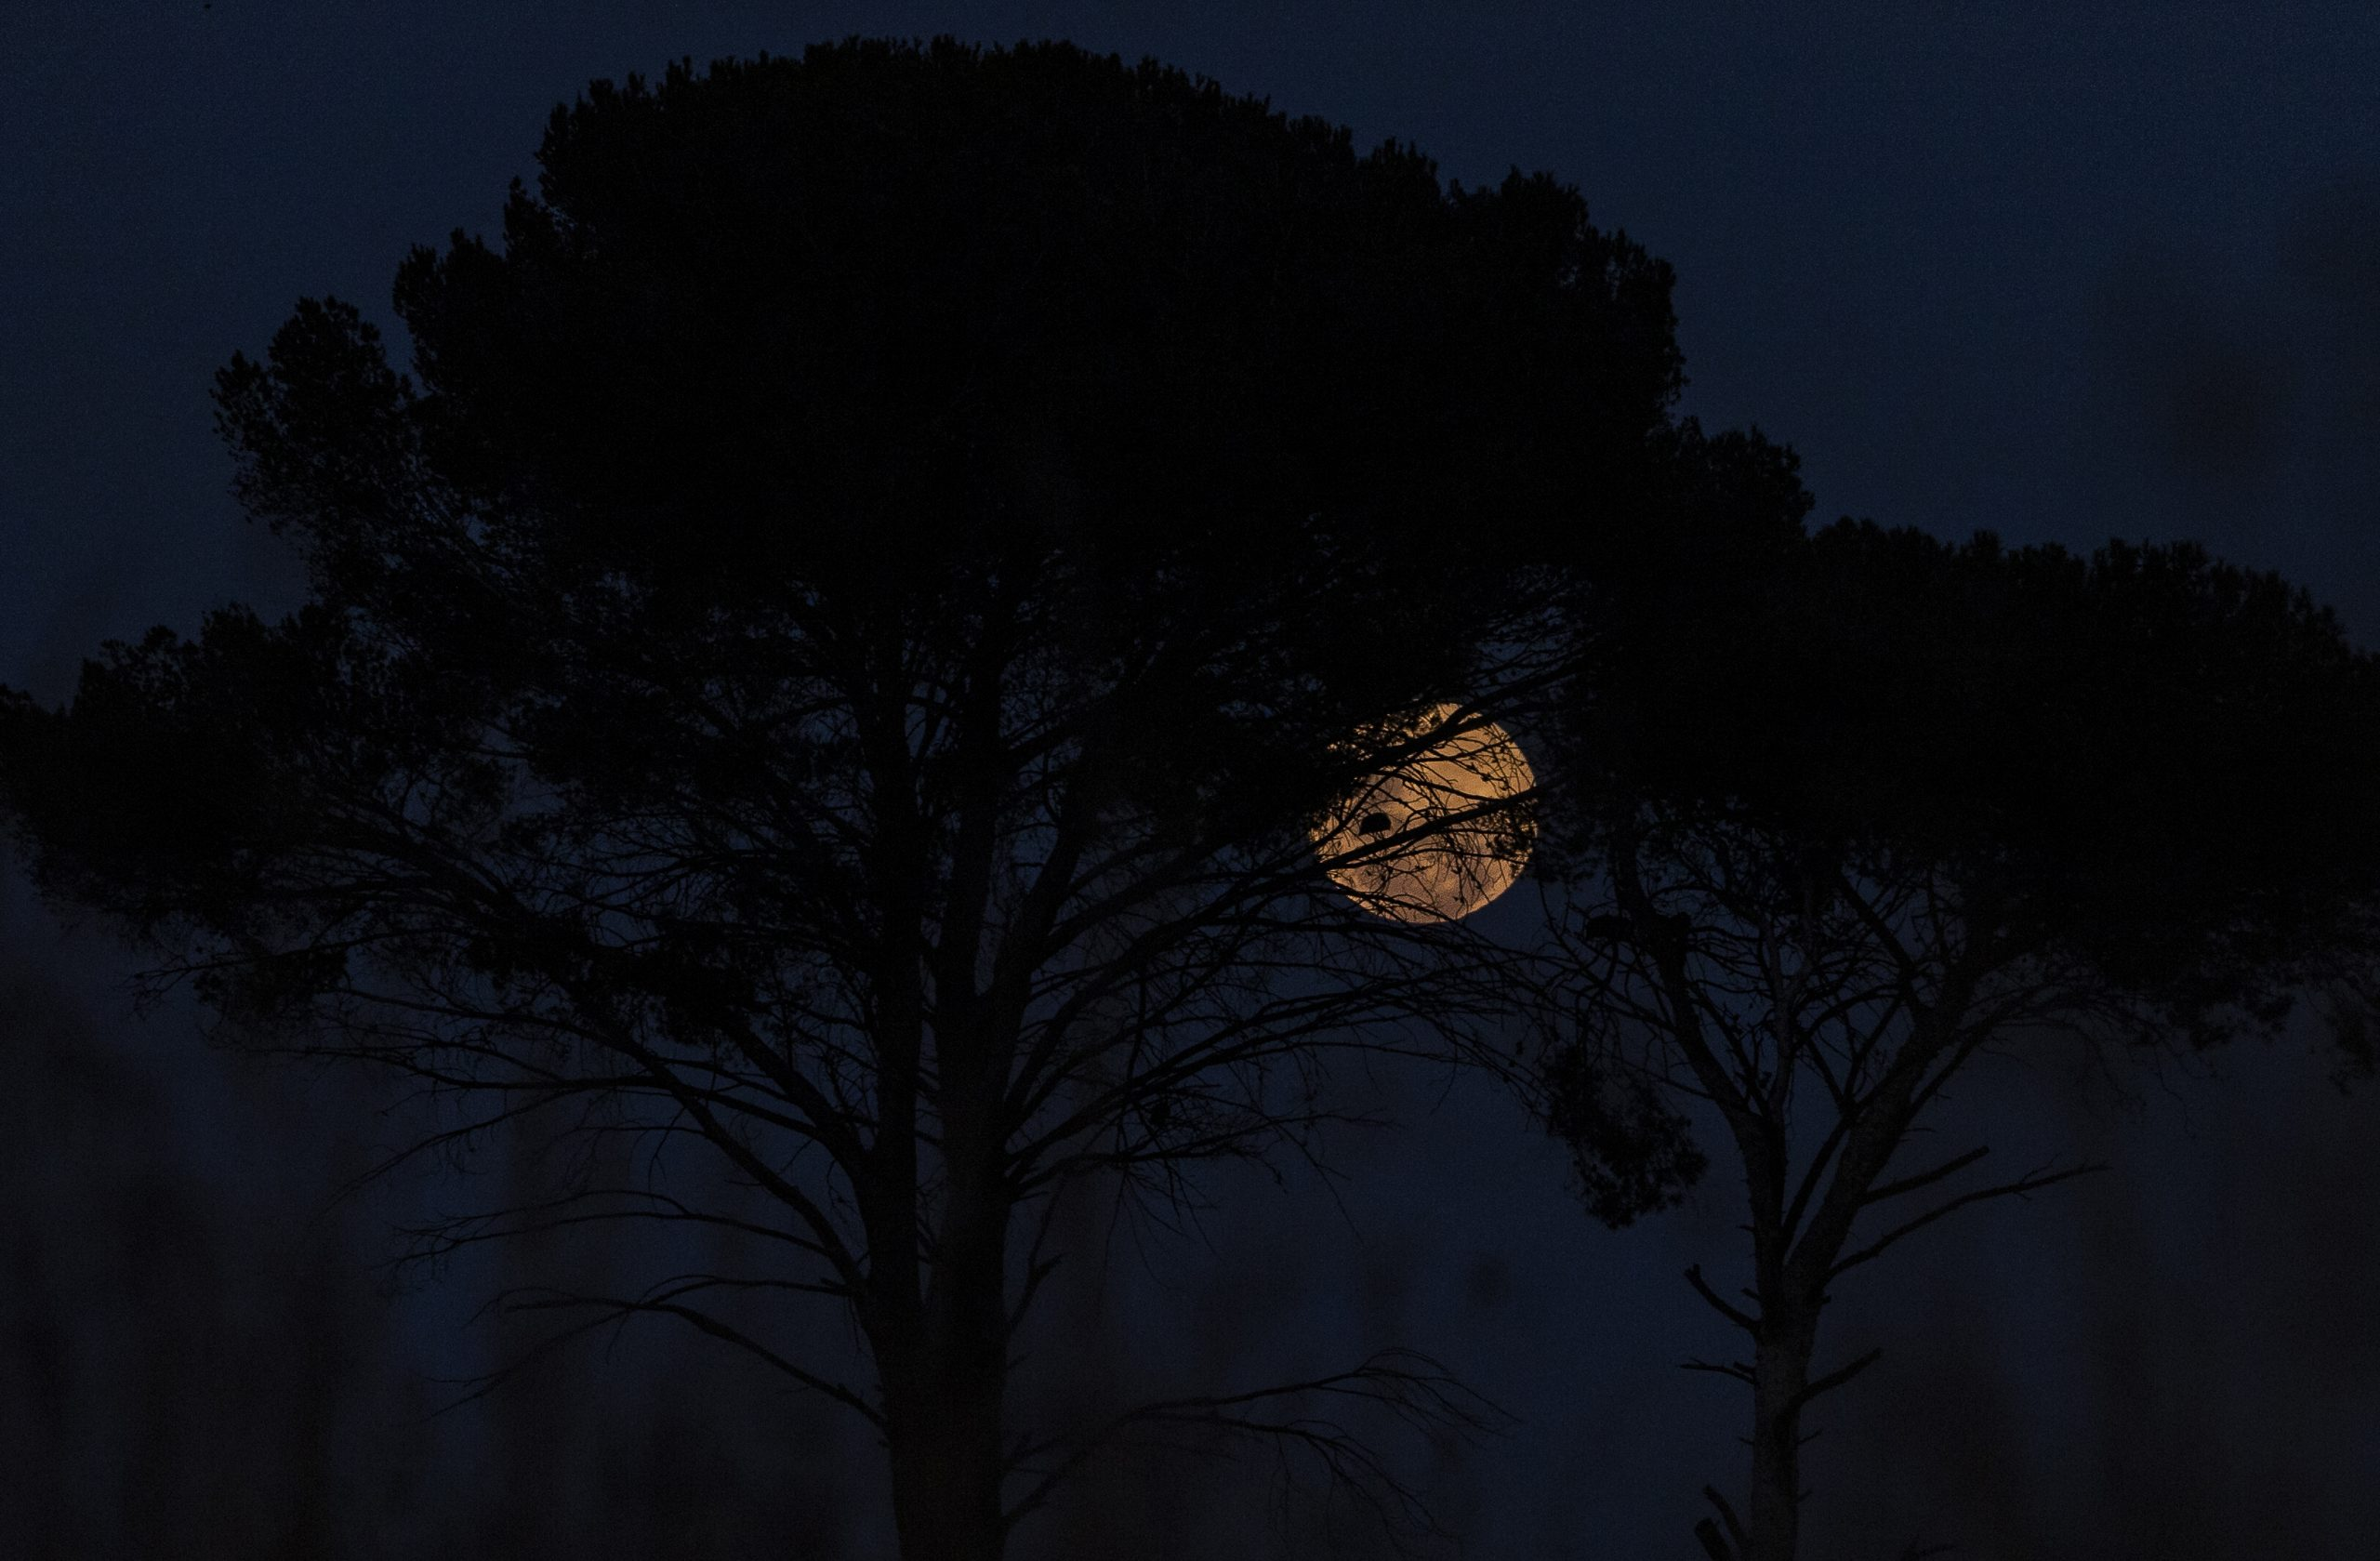 full moon Johannesburg South Africa.